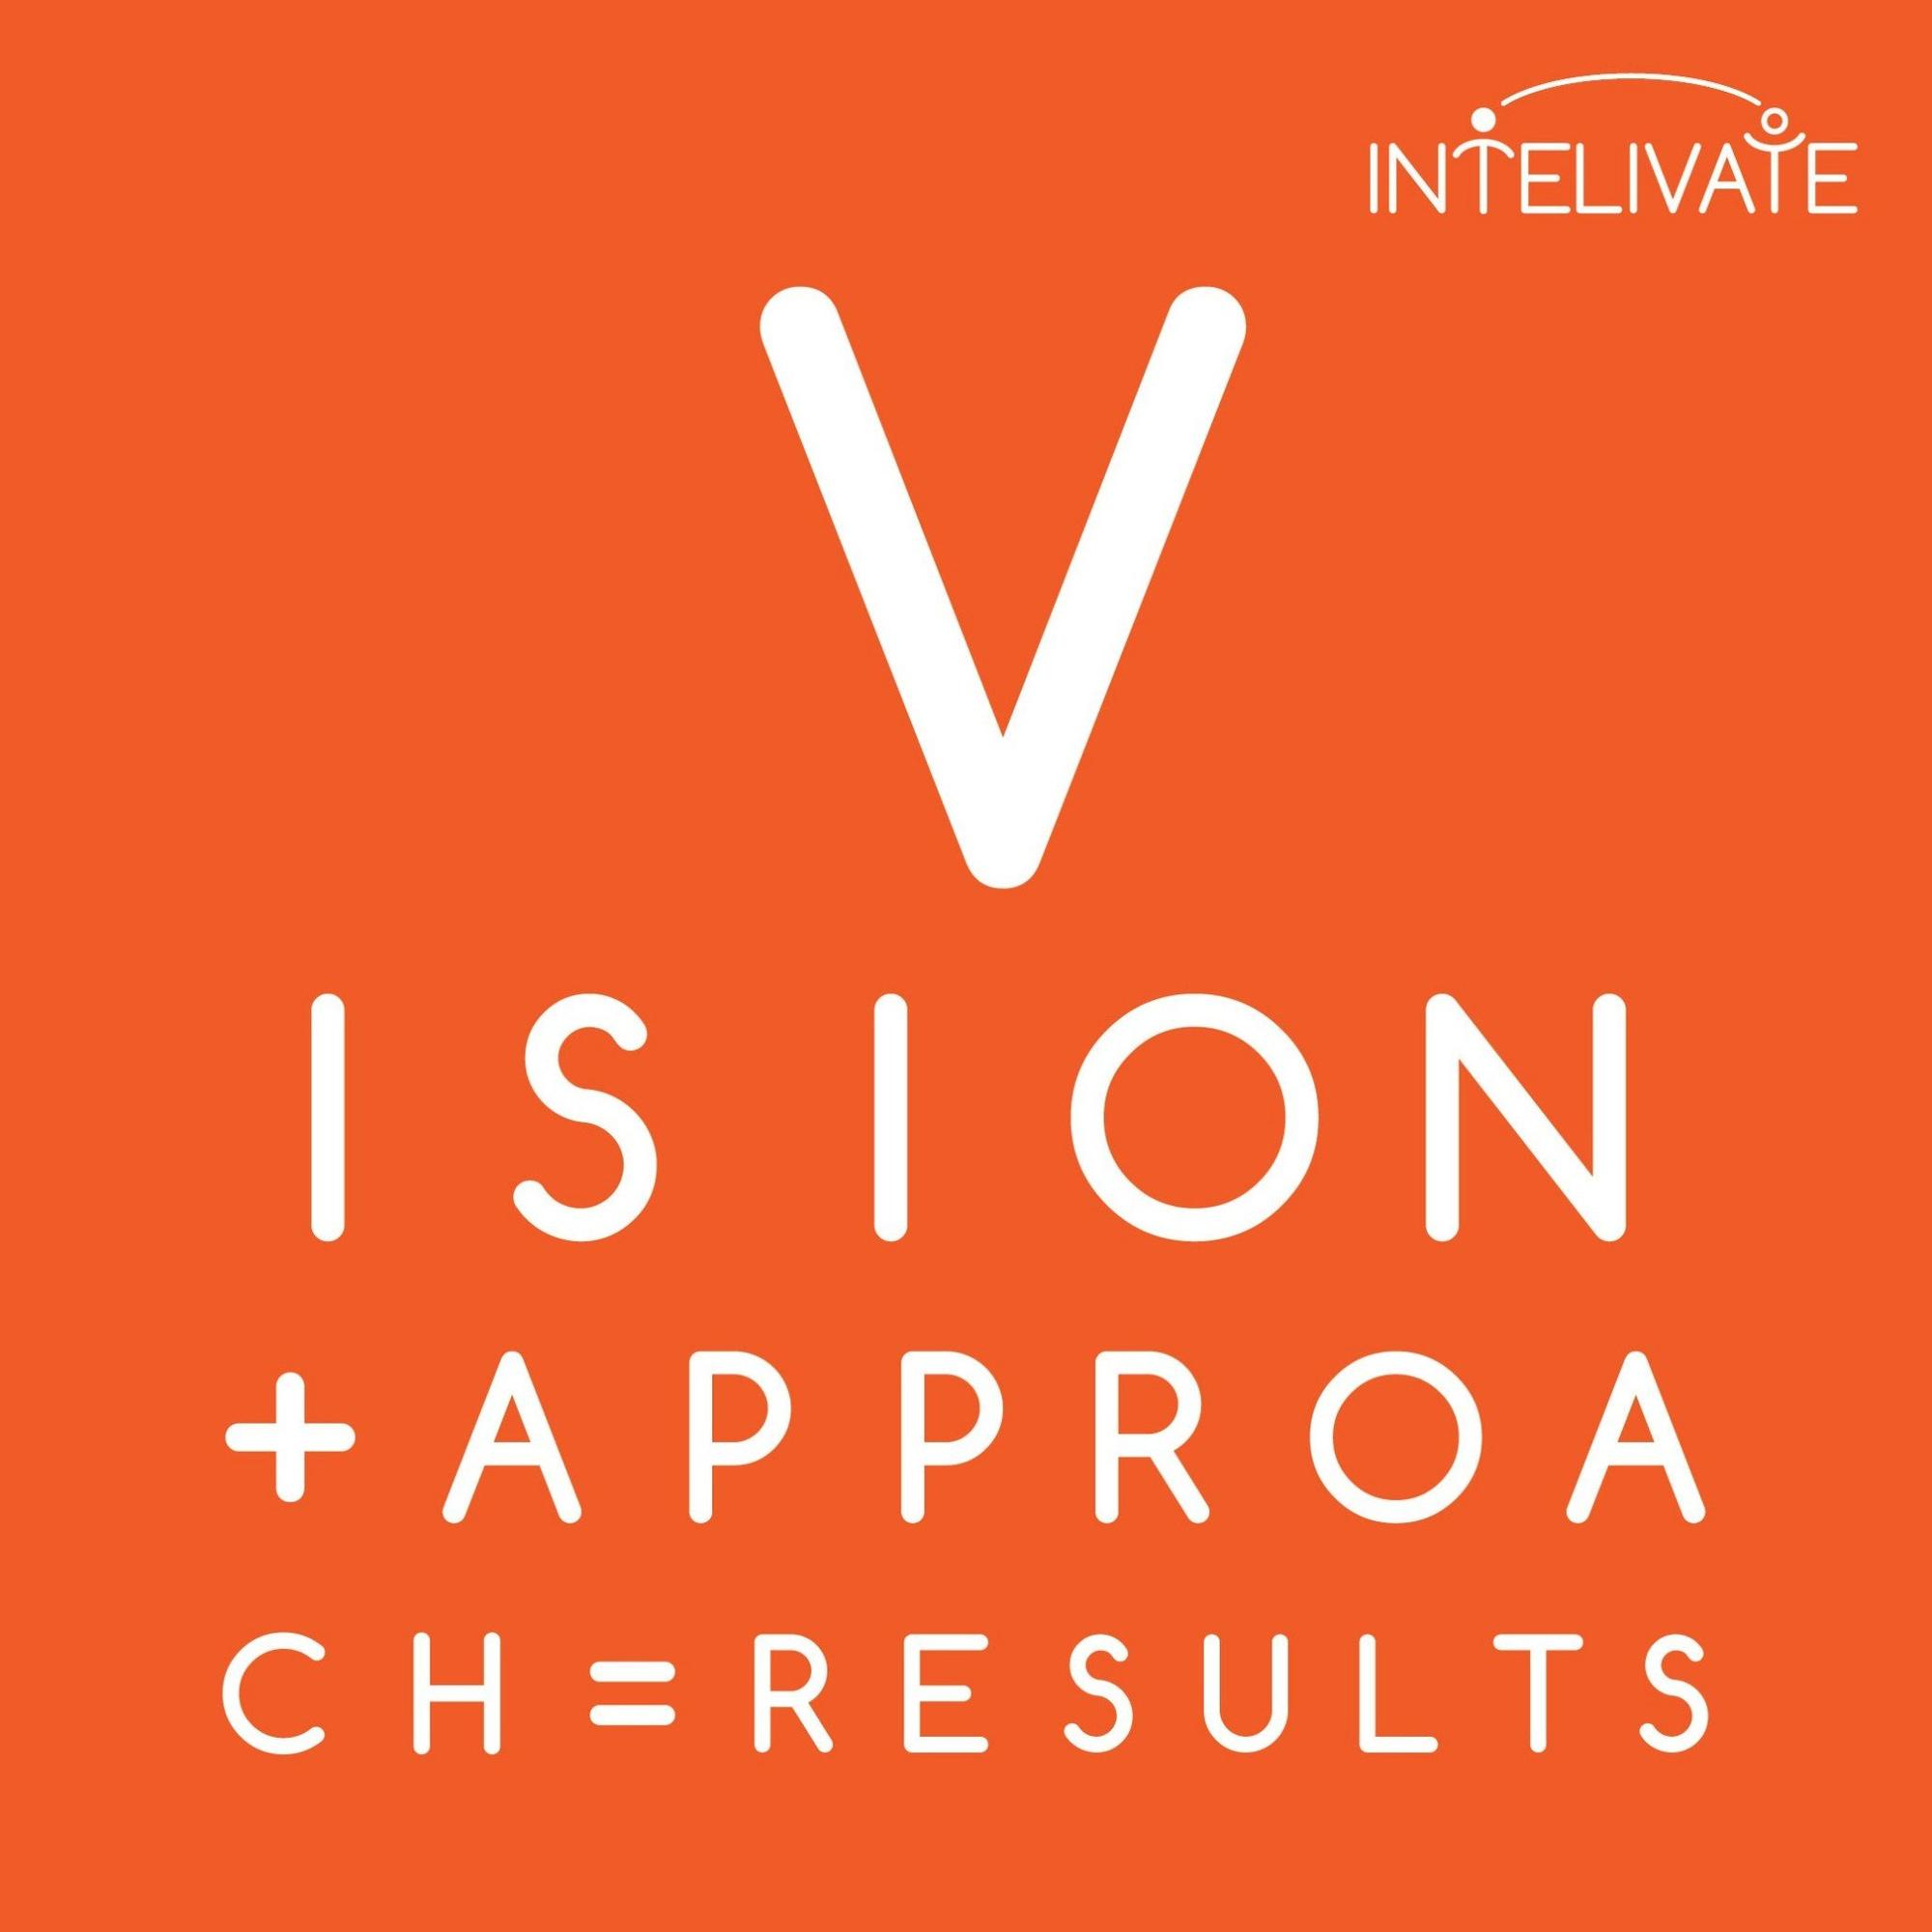 intelivate vision approach equals results poster square orange